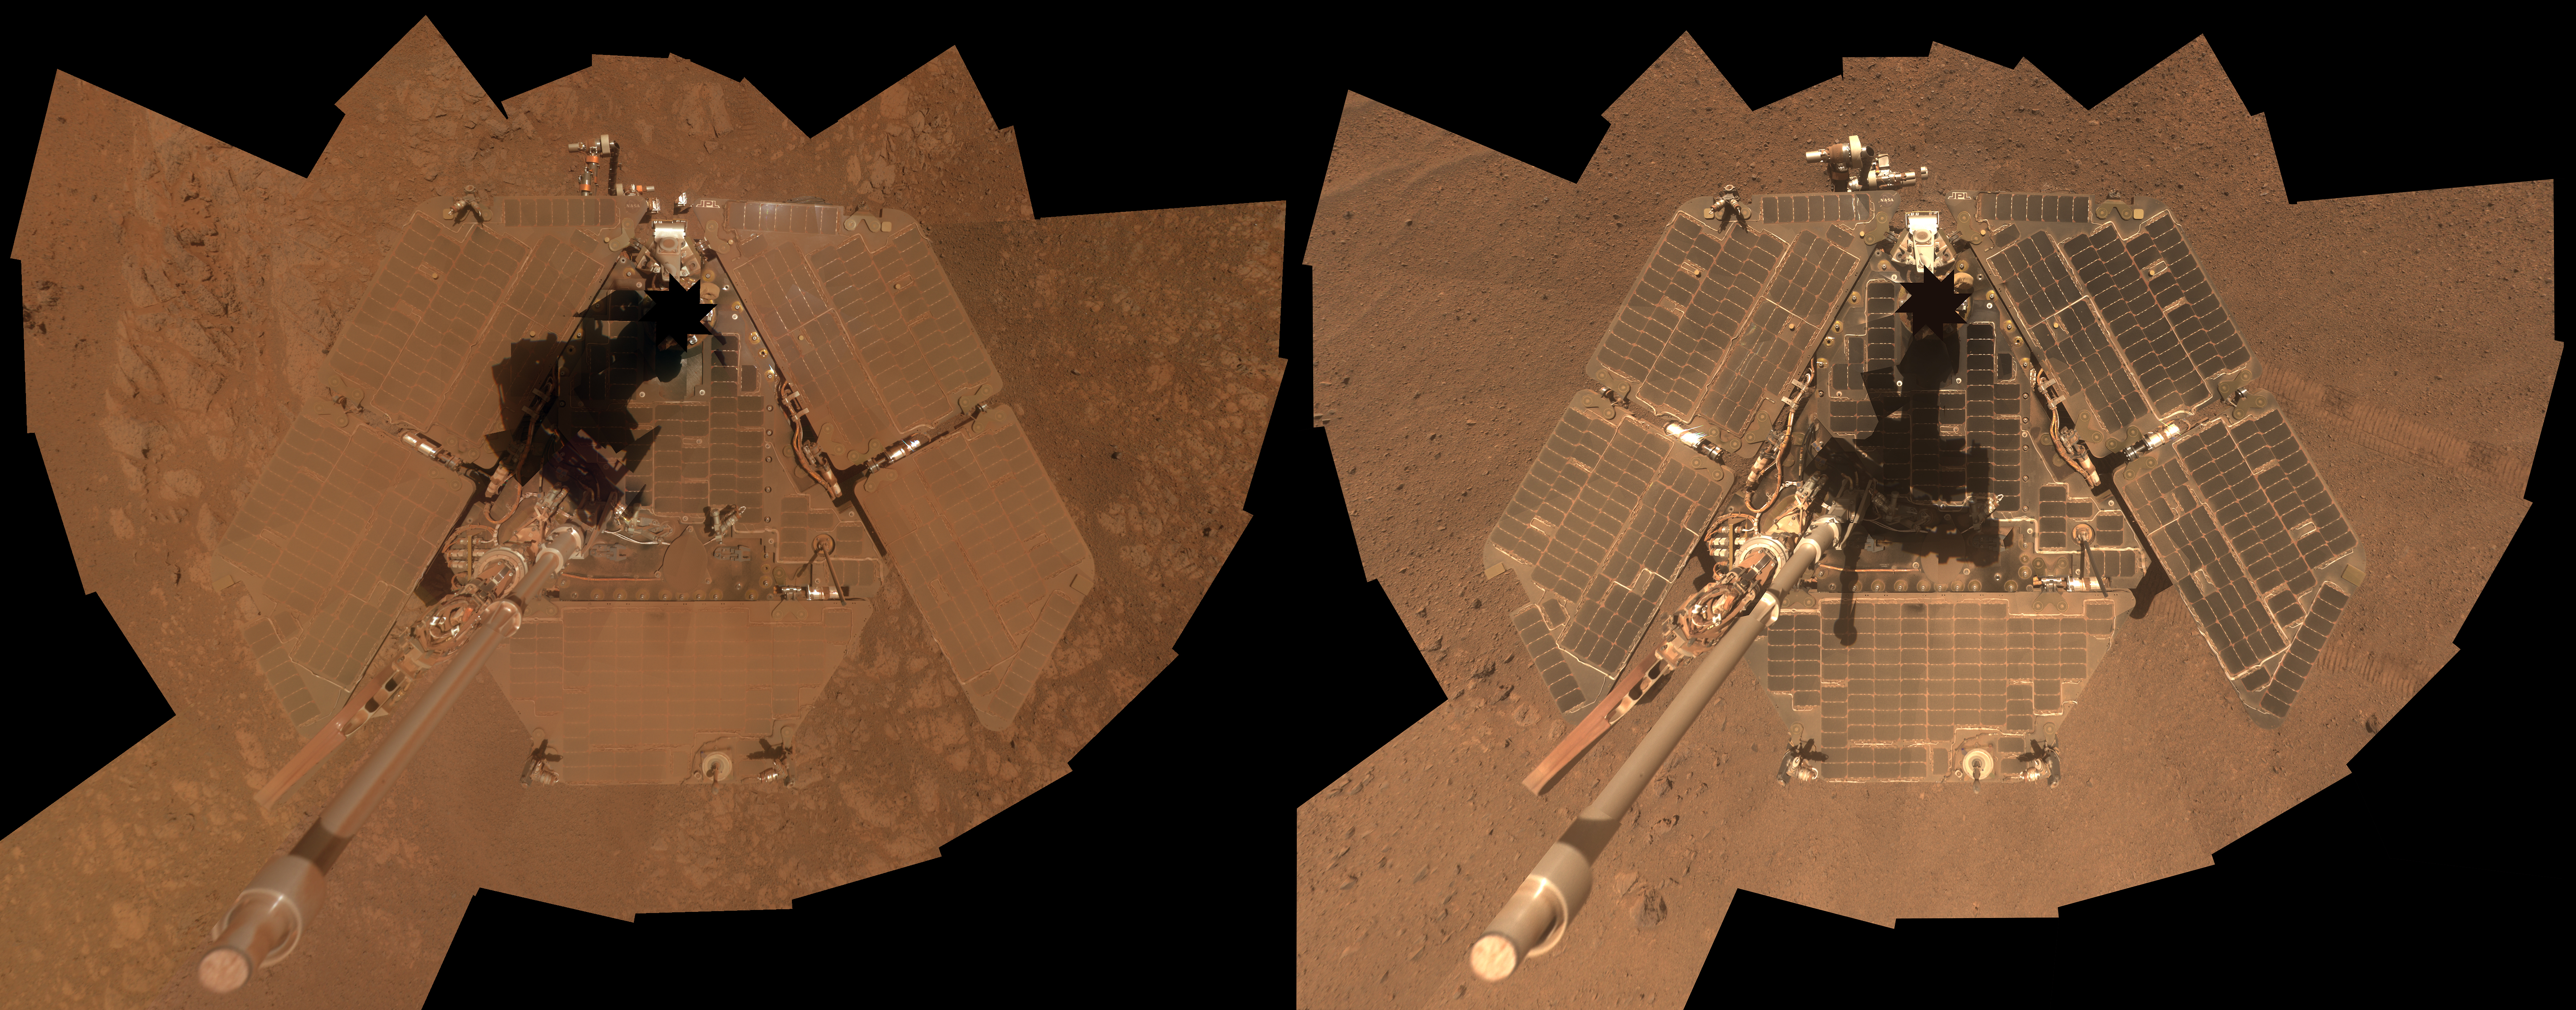 mars rover cleaning event - photo #12